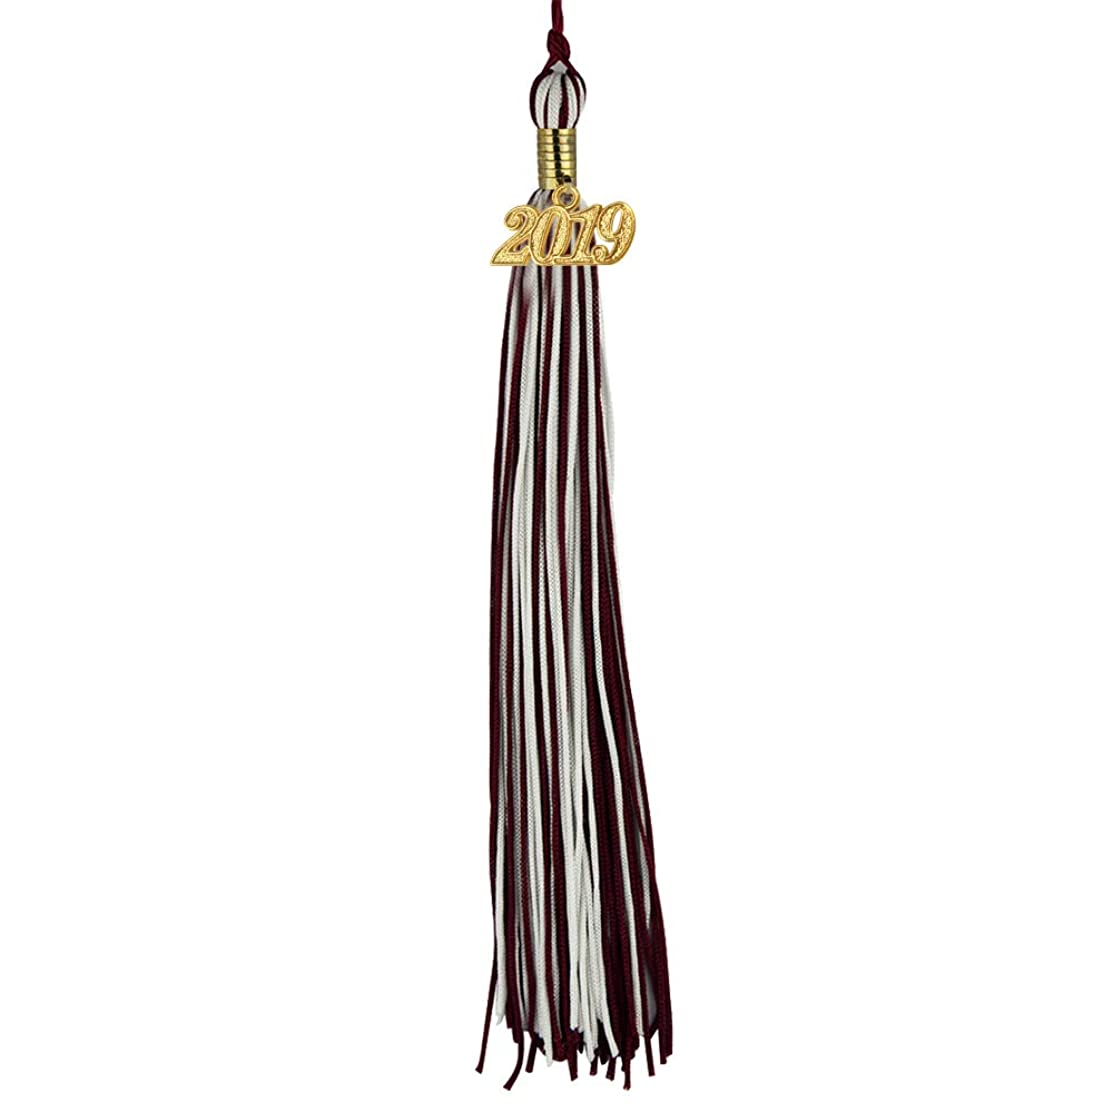 COKOSIM Two-Colored Graduation Tassel with Gold 2019 Year Charm 9-inch (Maroon/White)